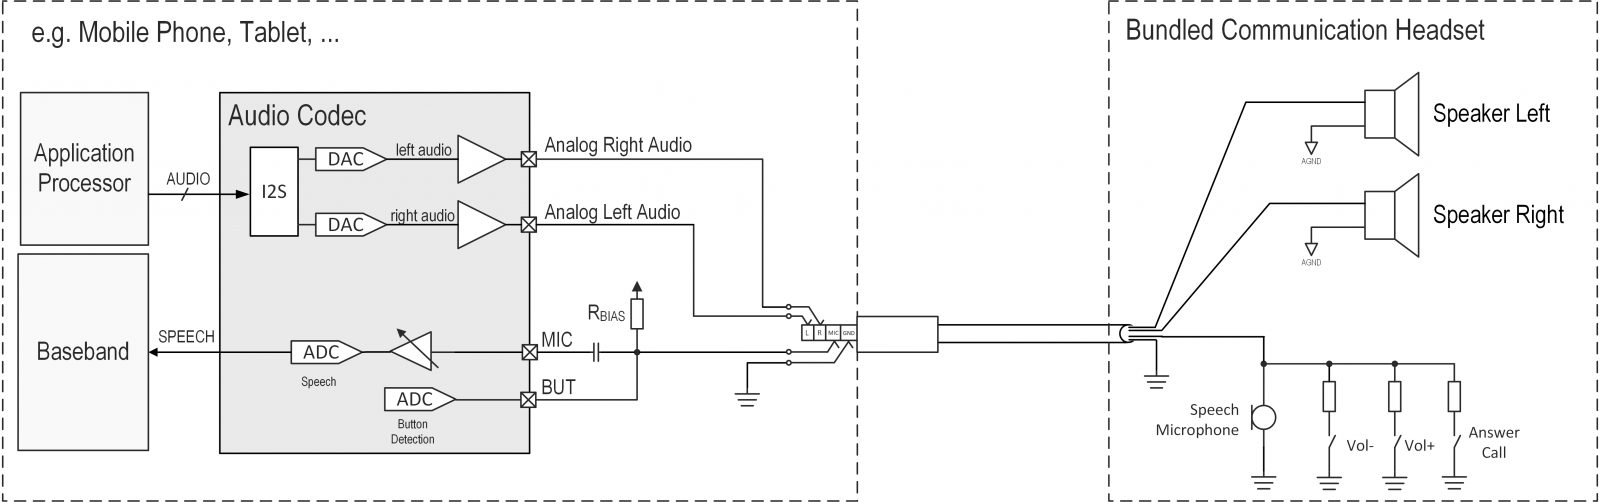 Samsung 20 Pin Usb Data Cable And Headset Pinout Diagram Headphone Wiring Schematic Dual Op